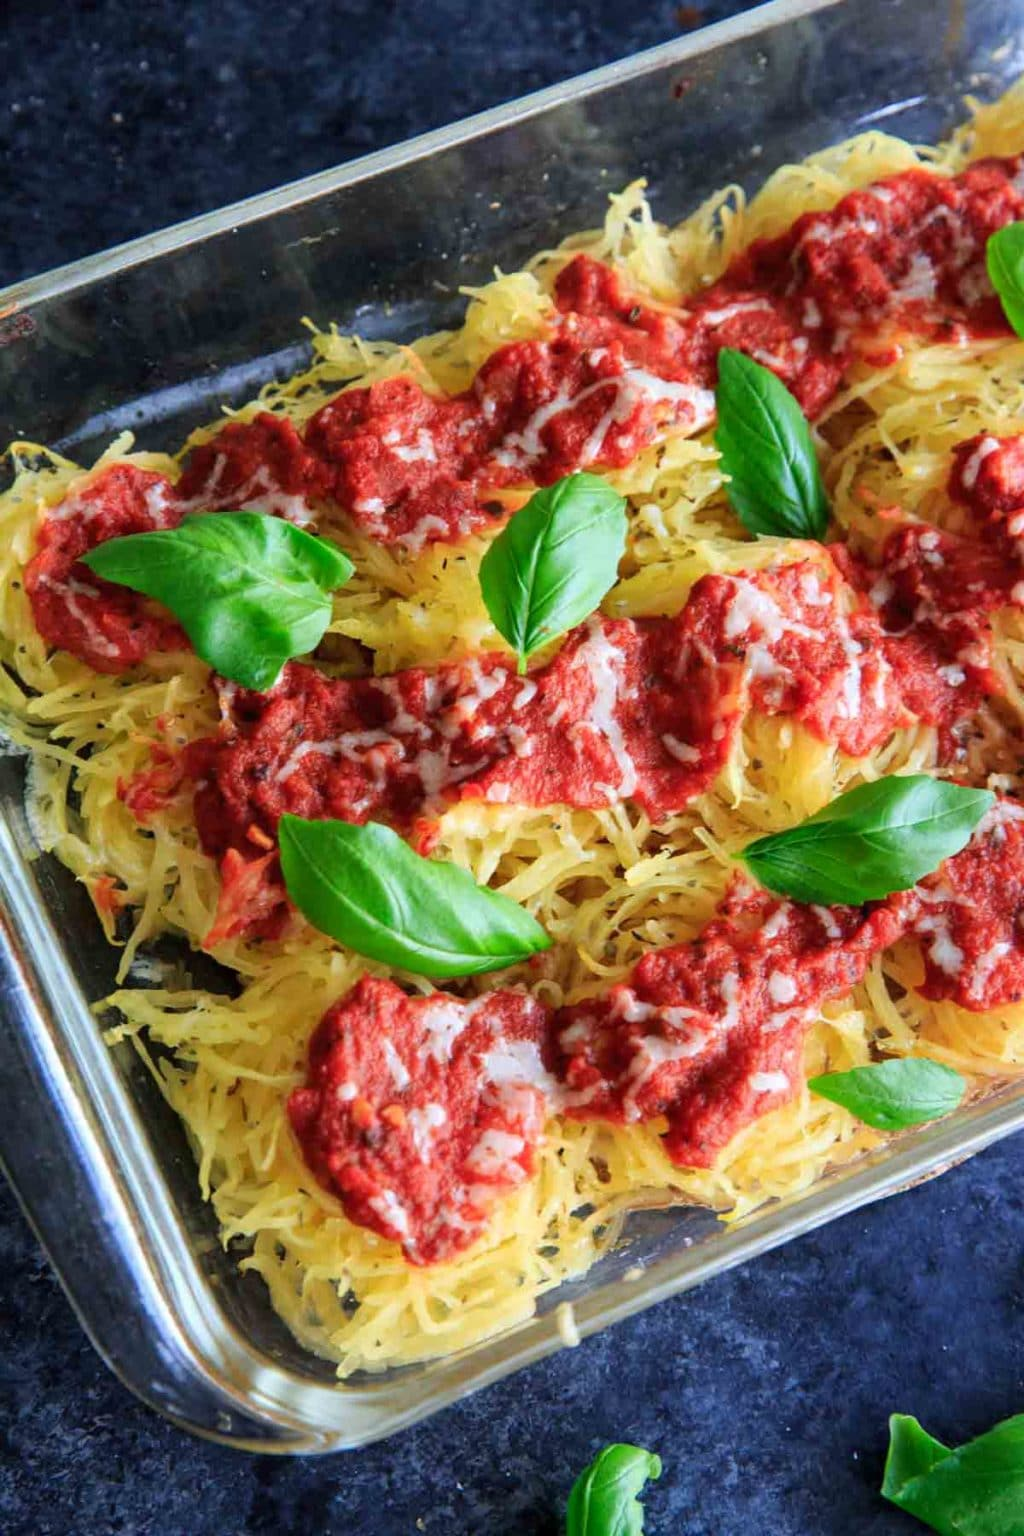 Spaghetti Squash Nests garnished with fresh basil are the perfect dinner appetizer for your guests. Customizable and delicious! Vegan-friendly and gluten-free.